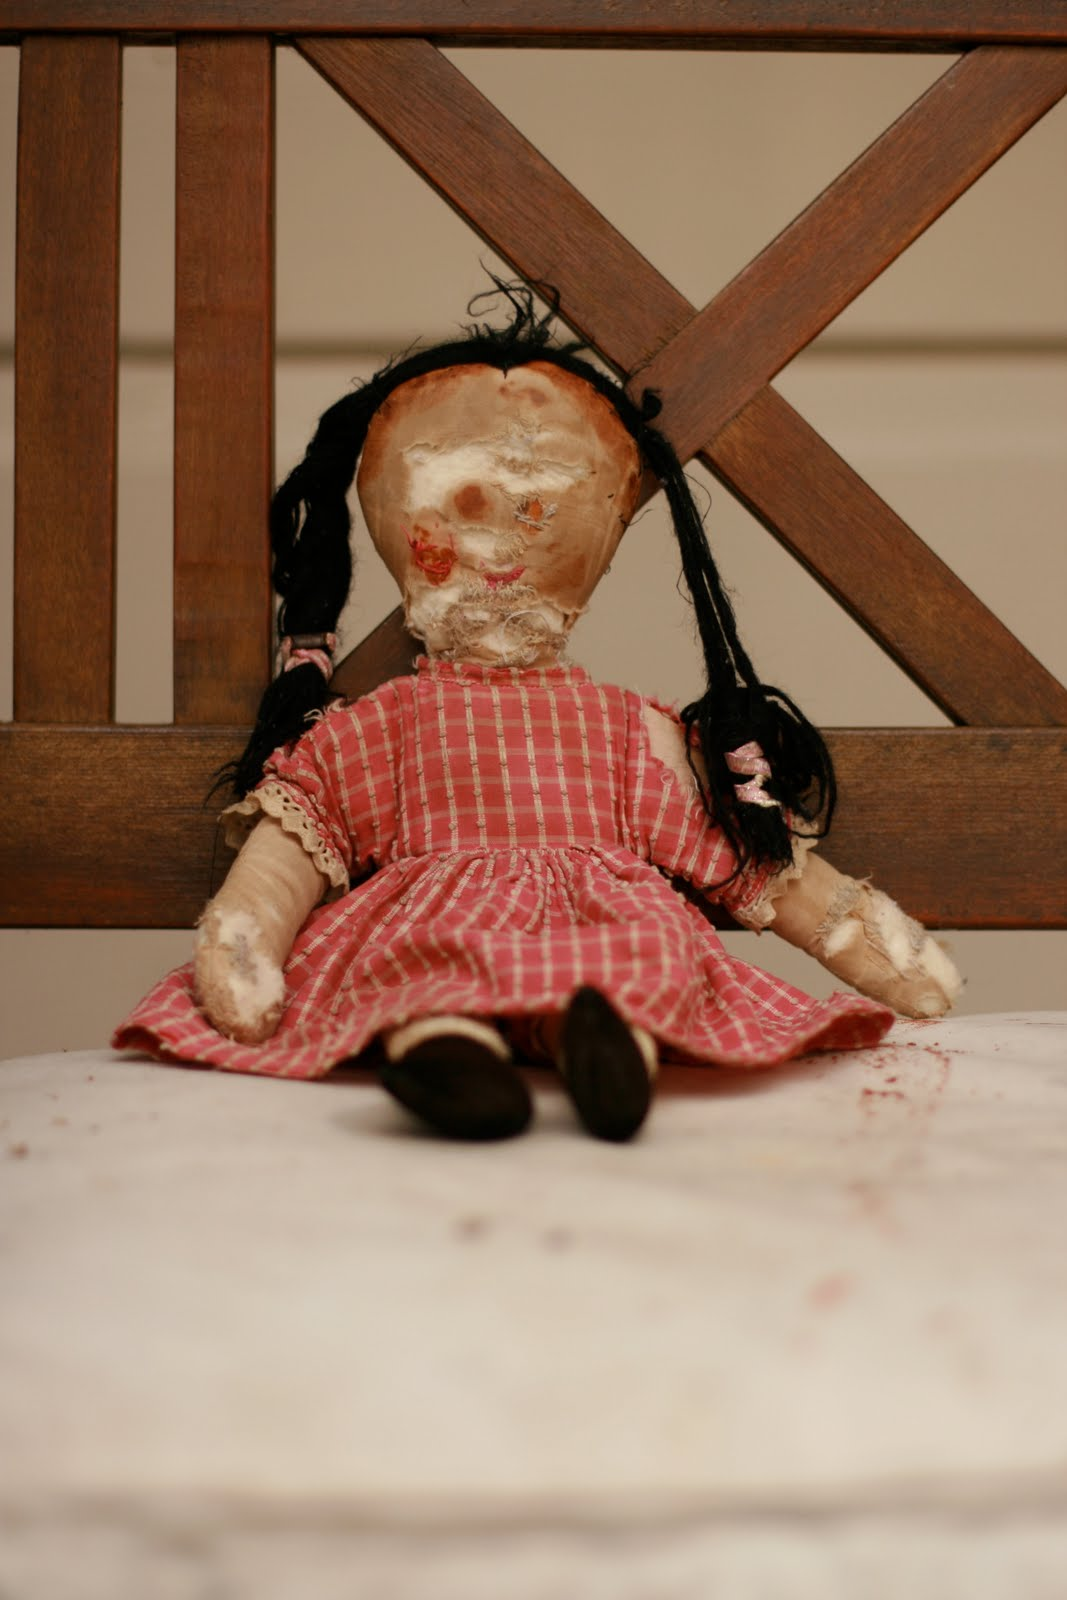 The Most Scariest Picture In The World Is this the scariest doll in